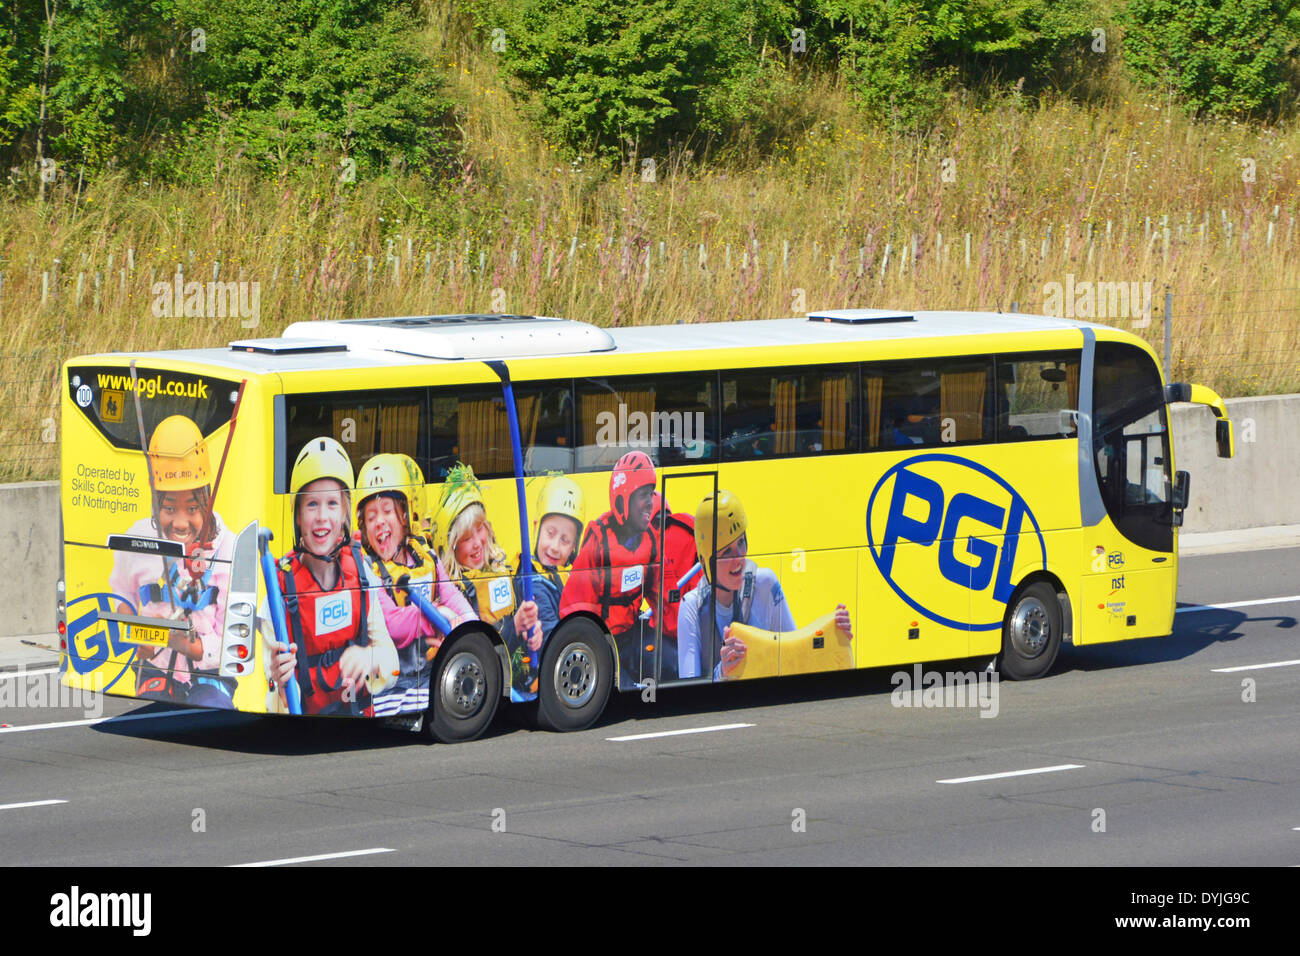 Advertising promoting adventure travel for school children on side and back of coach driving along motorway - Stock Image